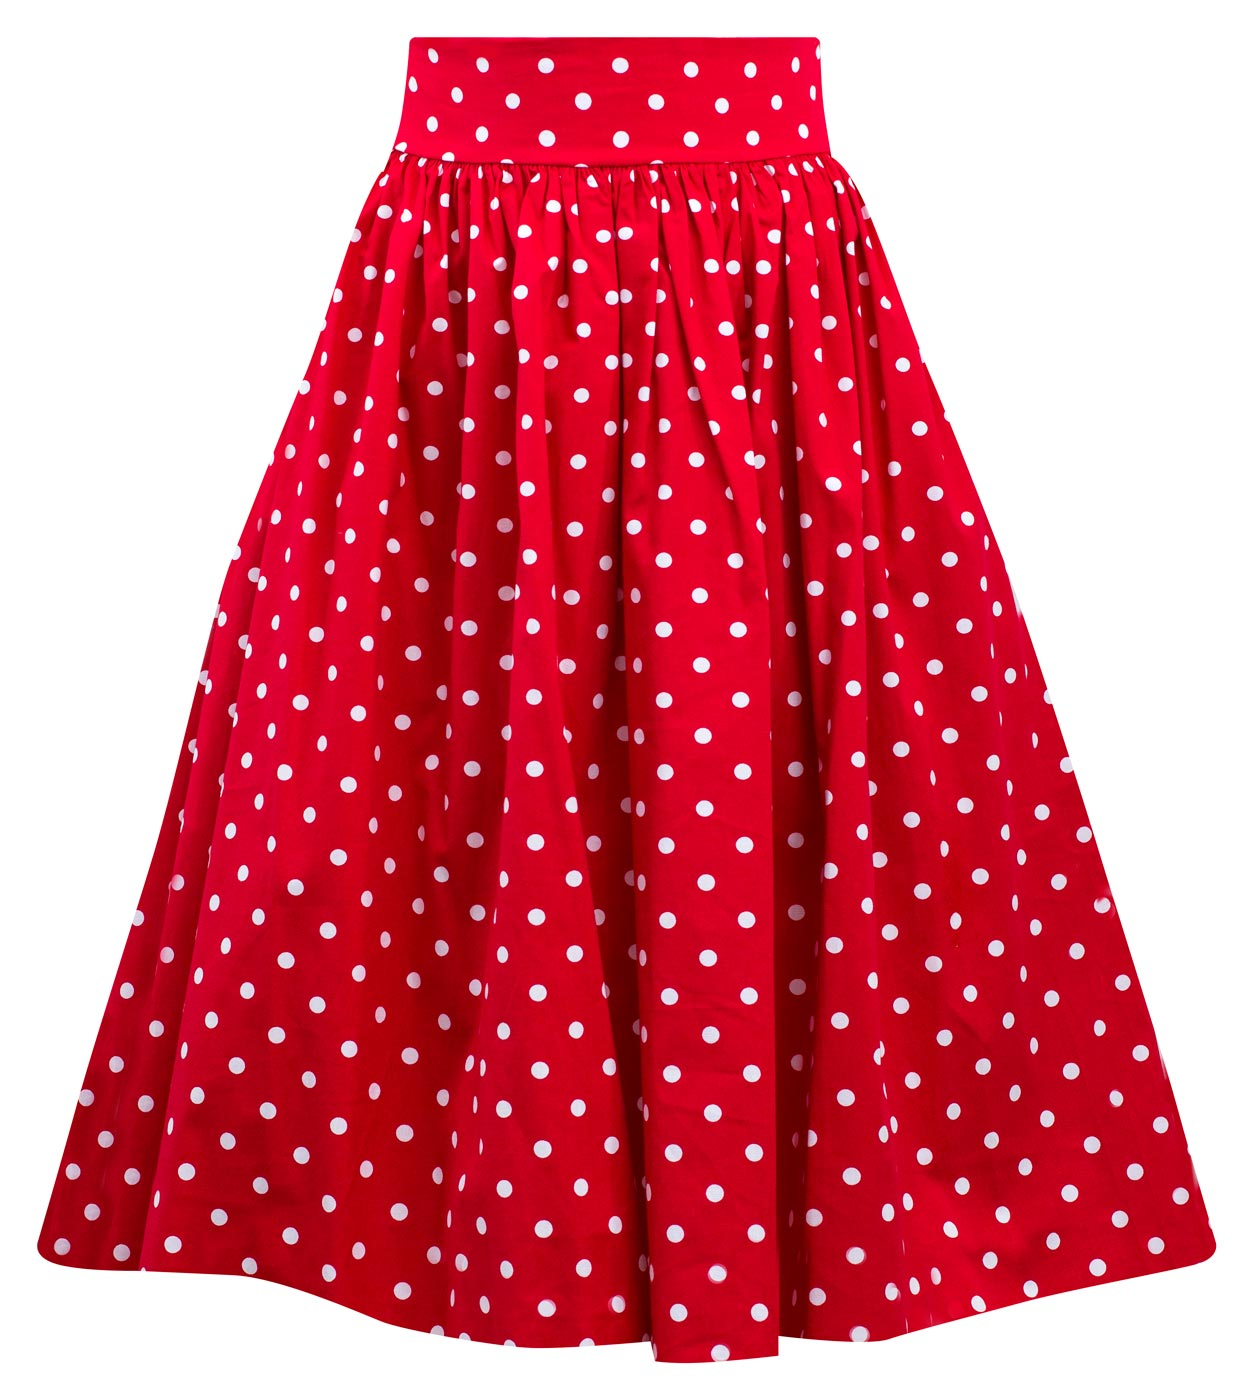 546288455912 Polka Dot Swing Skirt with Stretch Waist in Red – Double Trouble Apparel